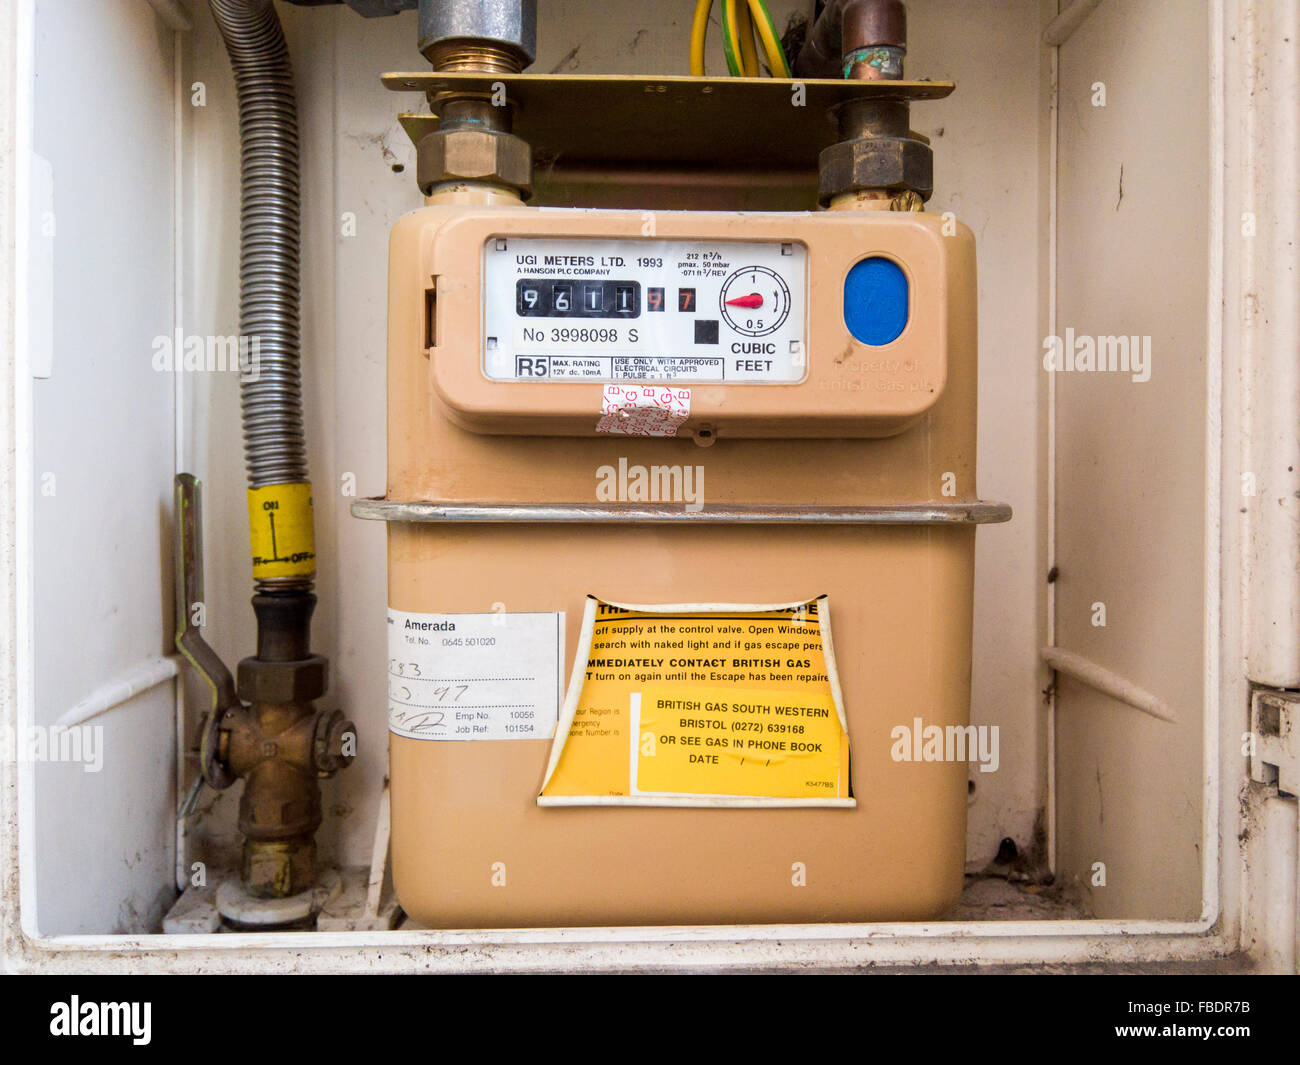 Residential Utility Meter Stock Photos Panel Wiring Jobs Bristol Domestic Gas United Kingdom Image